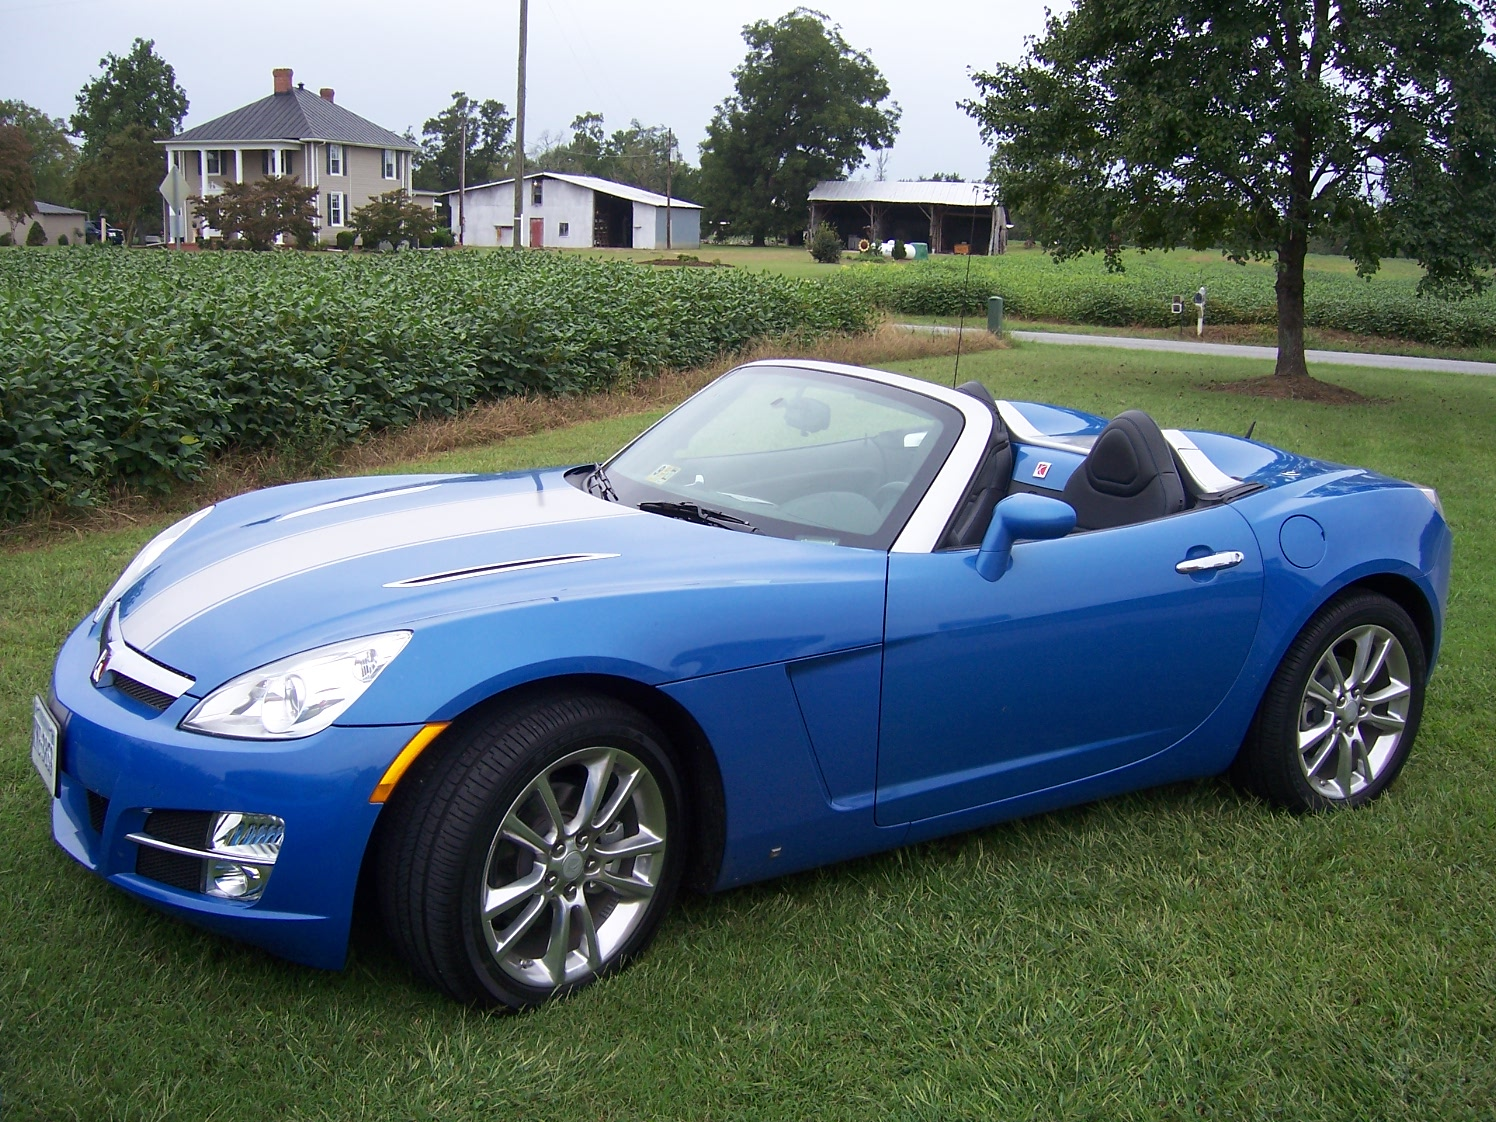 Hydro Blue 2009 limited edition saturn sky for sale-018.jpg